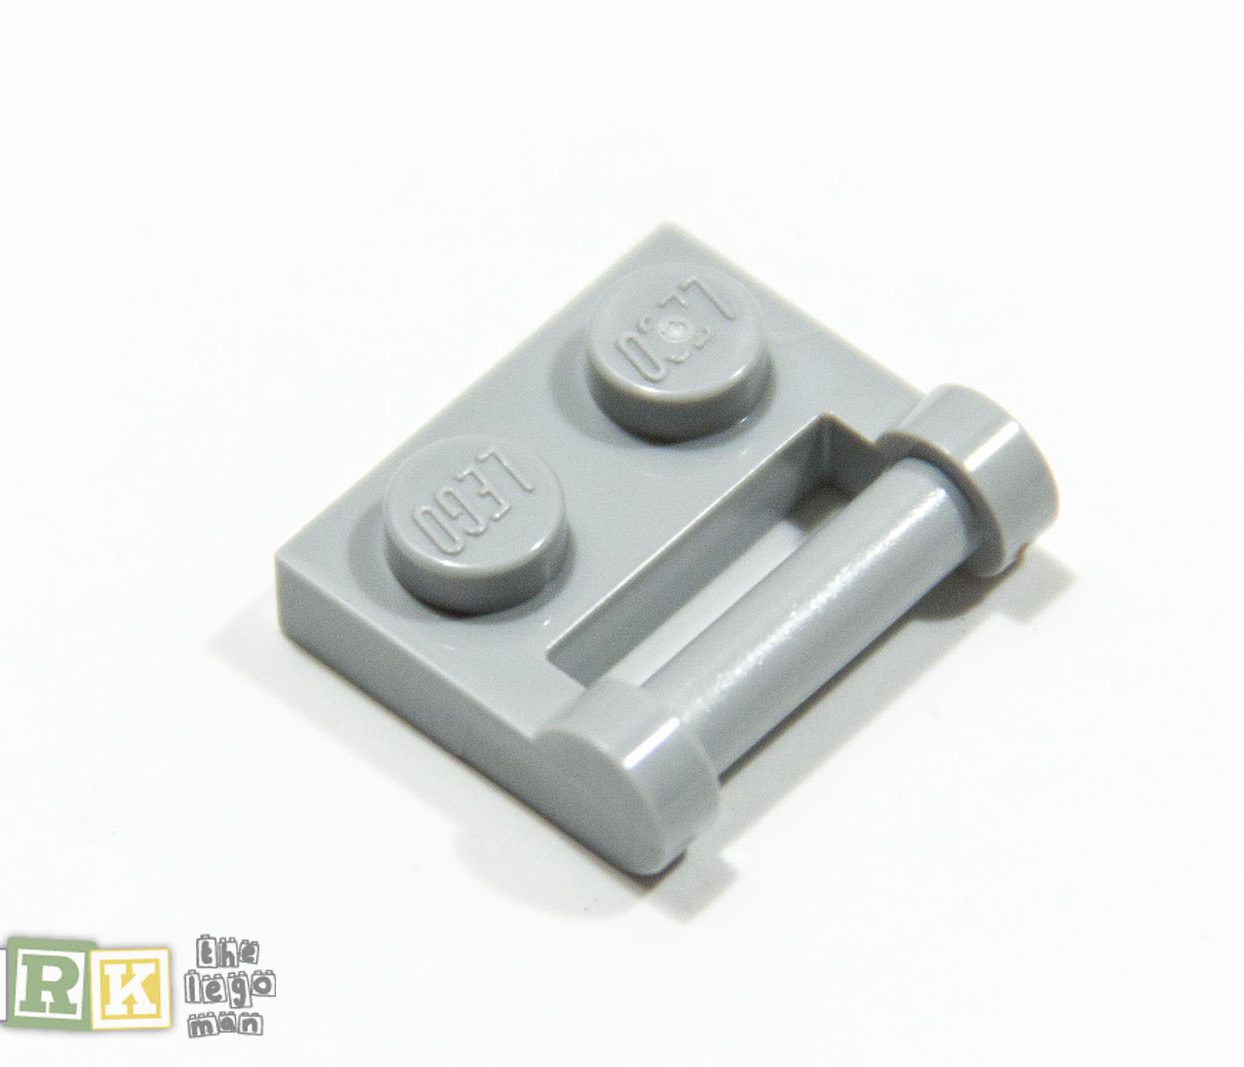 NEW Lego 48336 Plate 1x2 With Stick Handle 3.18 4244627